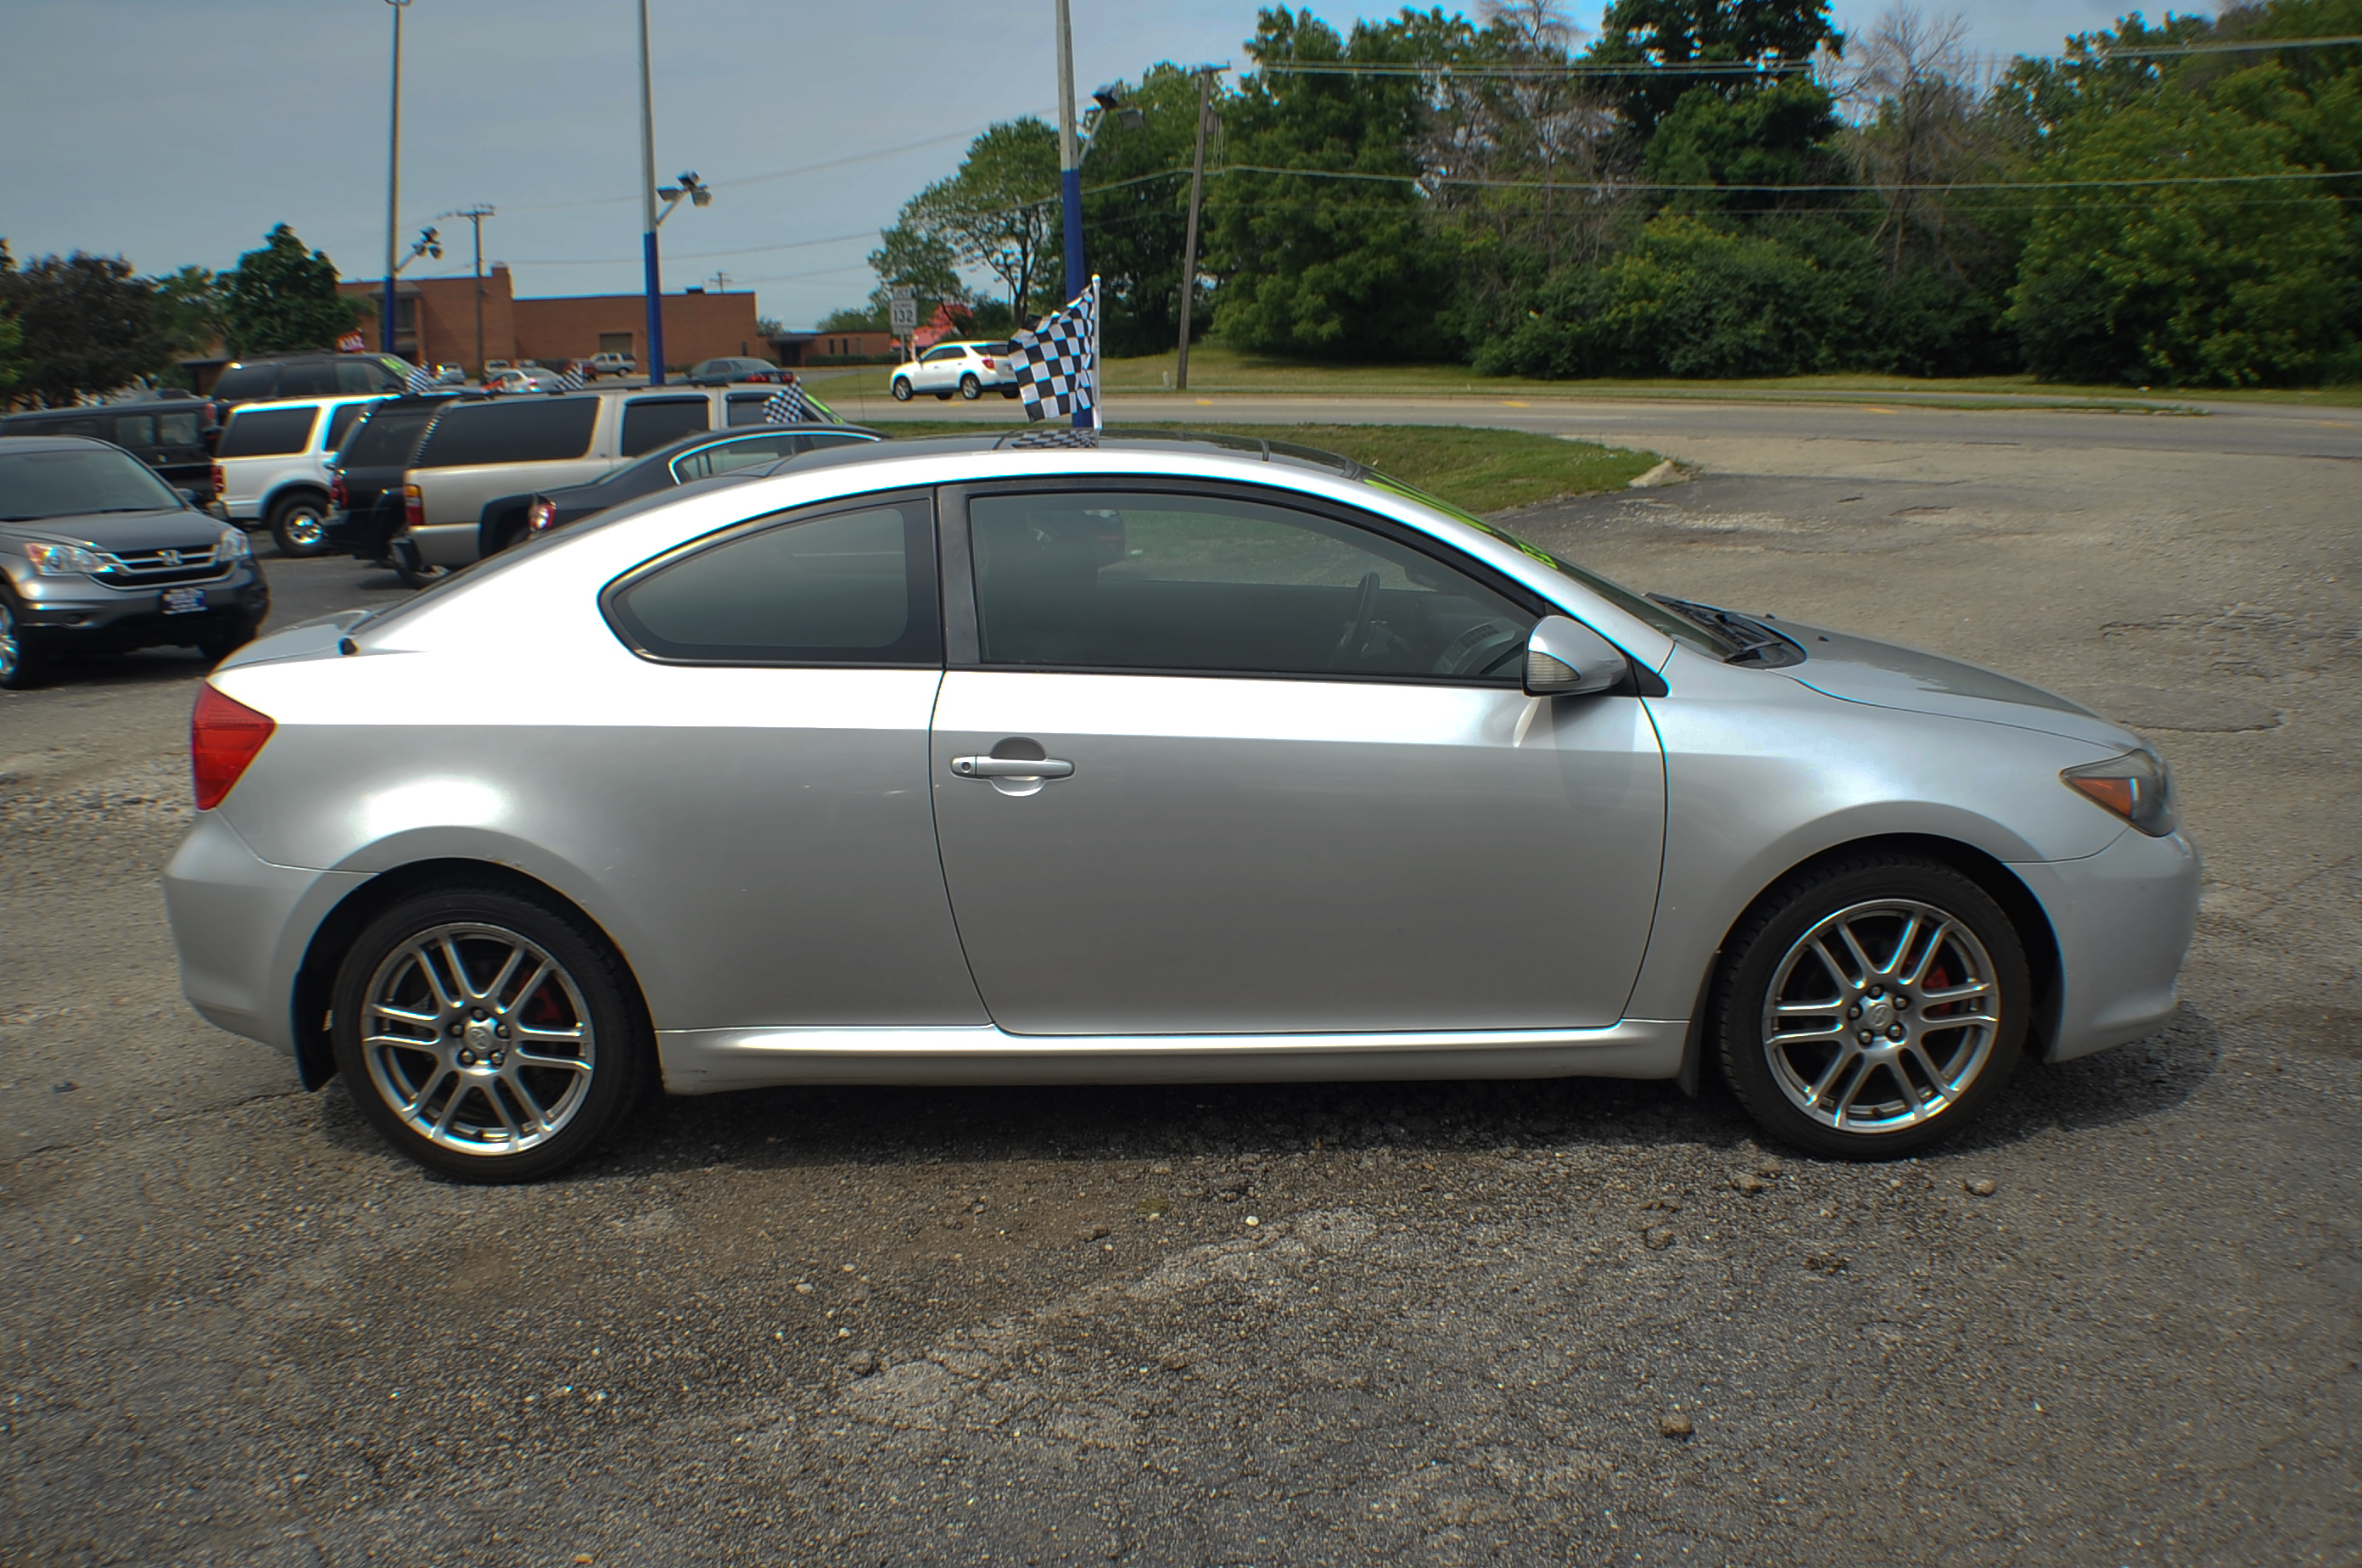 2006 Scion TC Manual Shift Coupe Used Car Sale Lindenhurst Gurnee